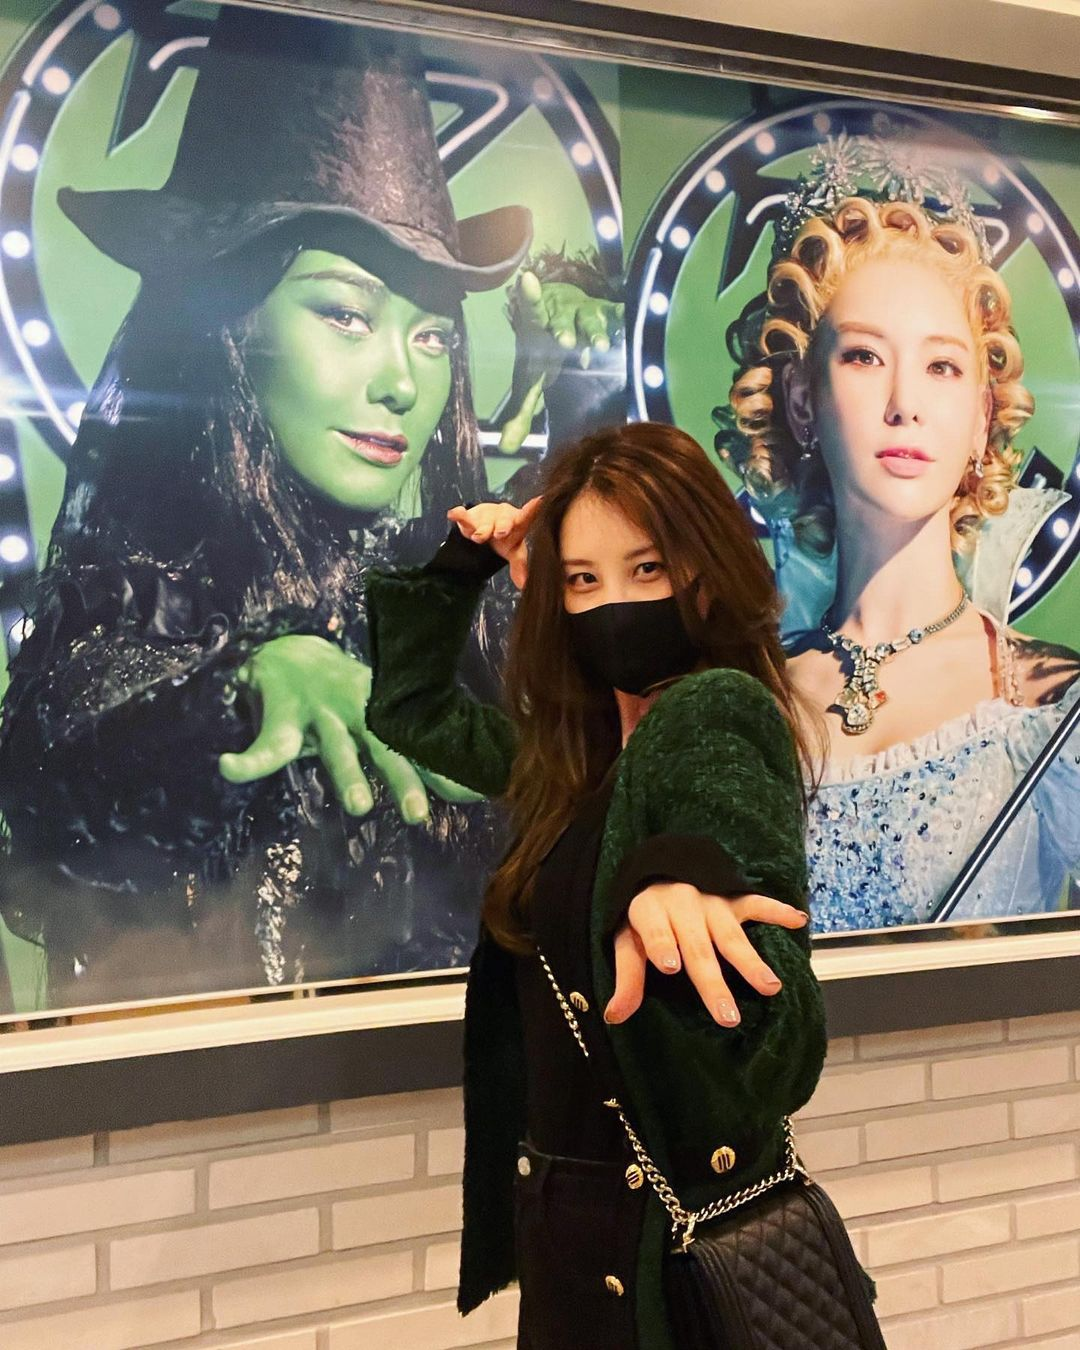 Girls' Generation's Seohyun Drops New Photos on Her SNS